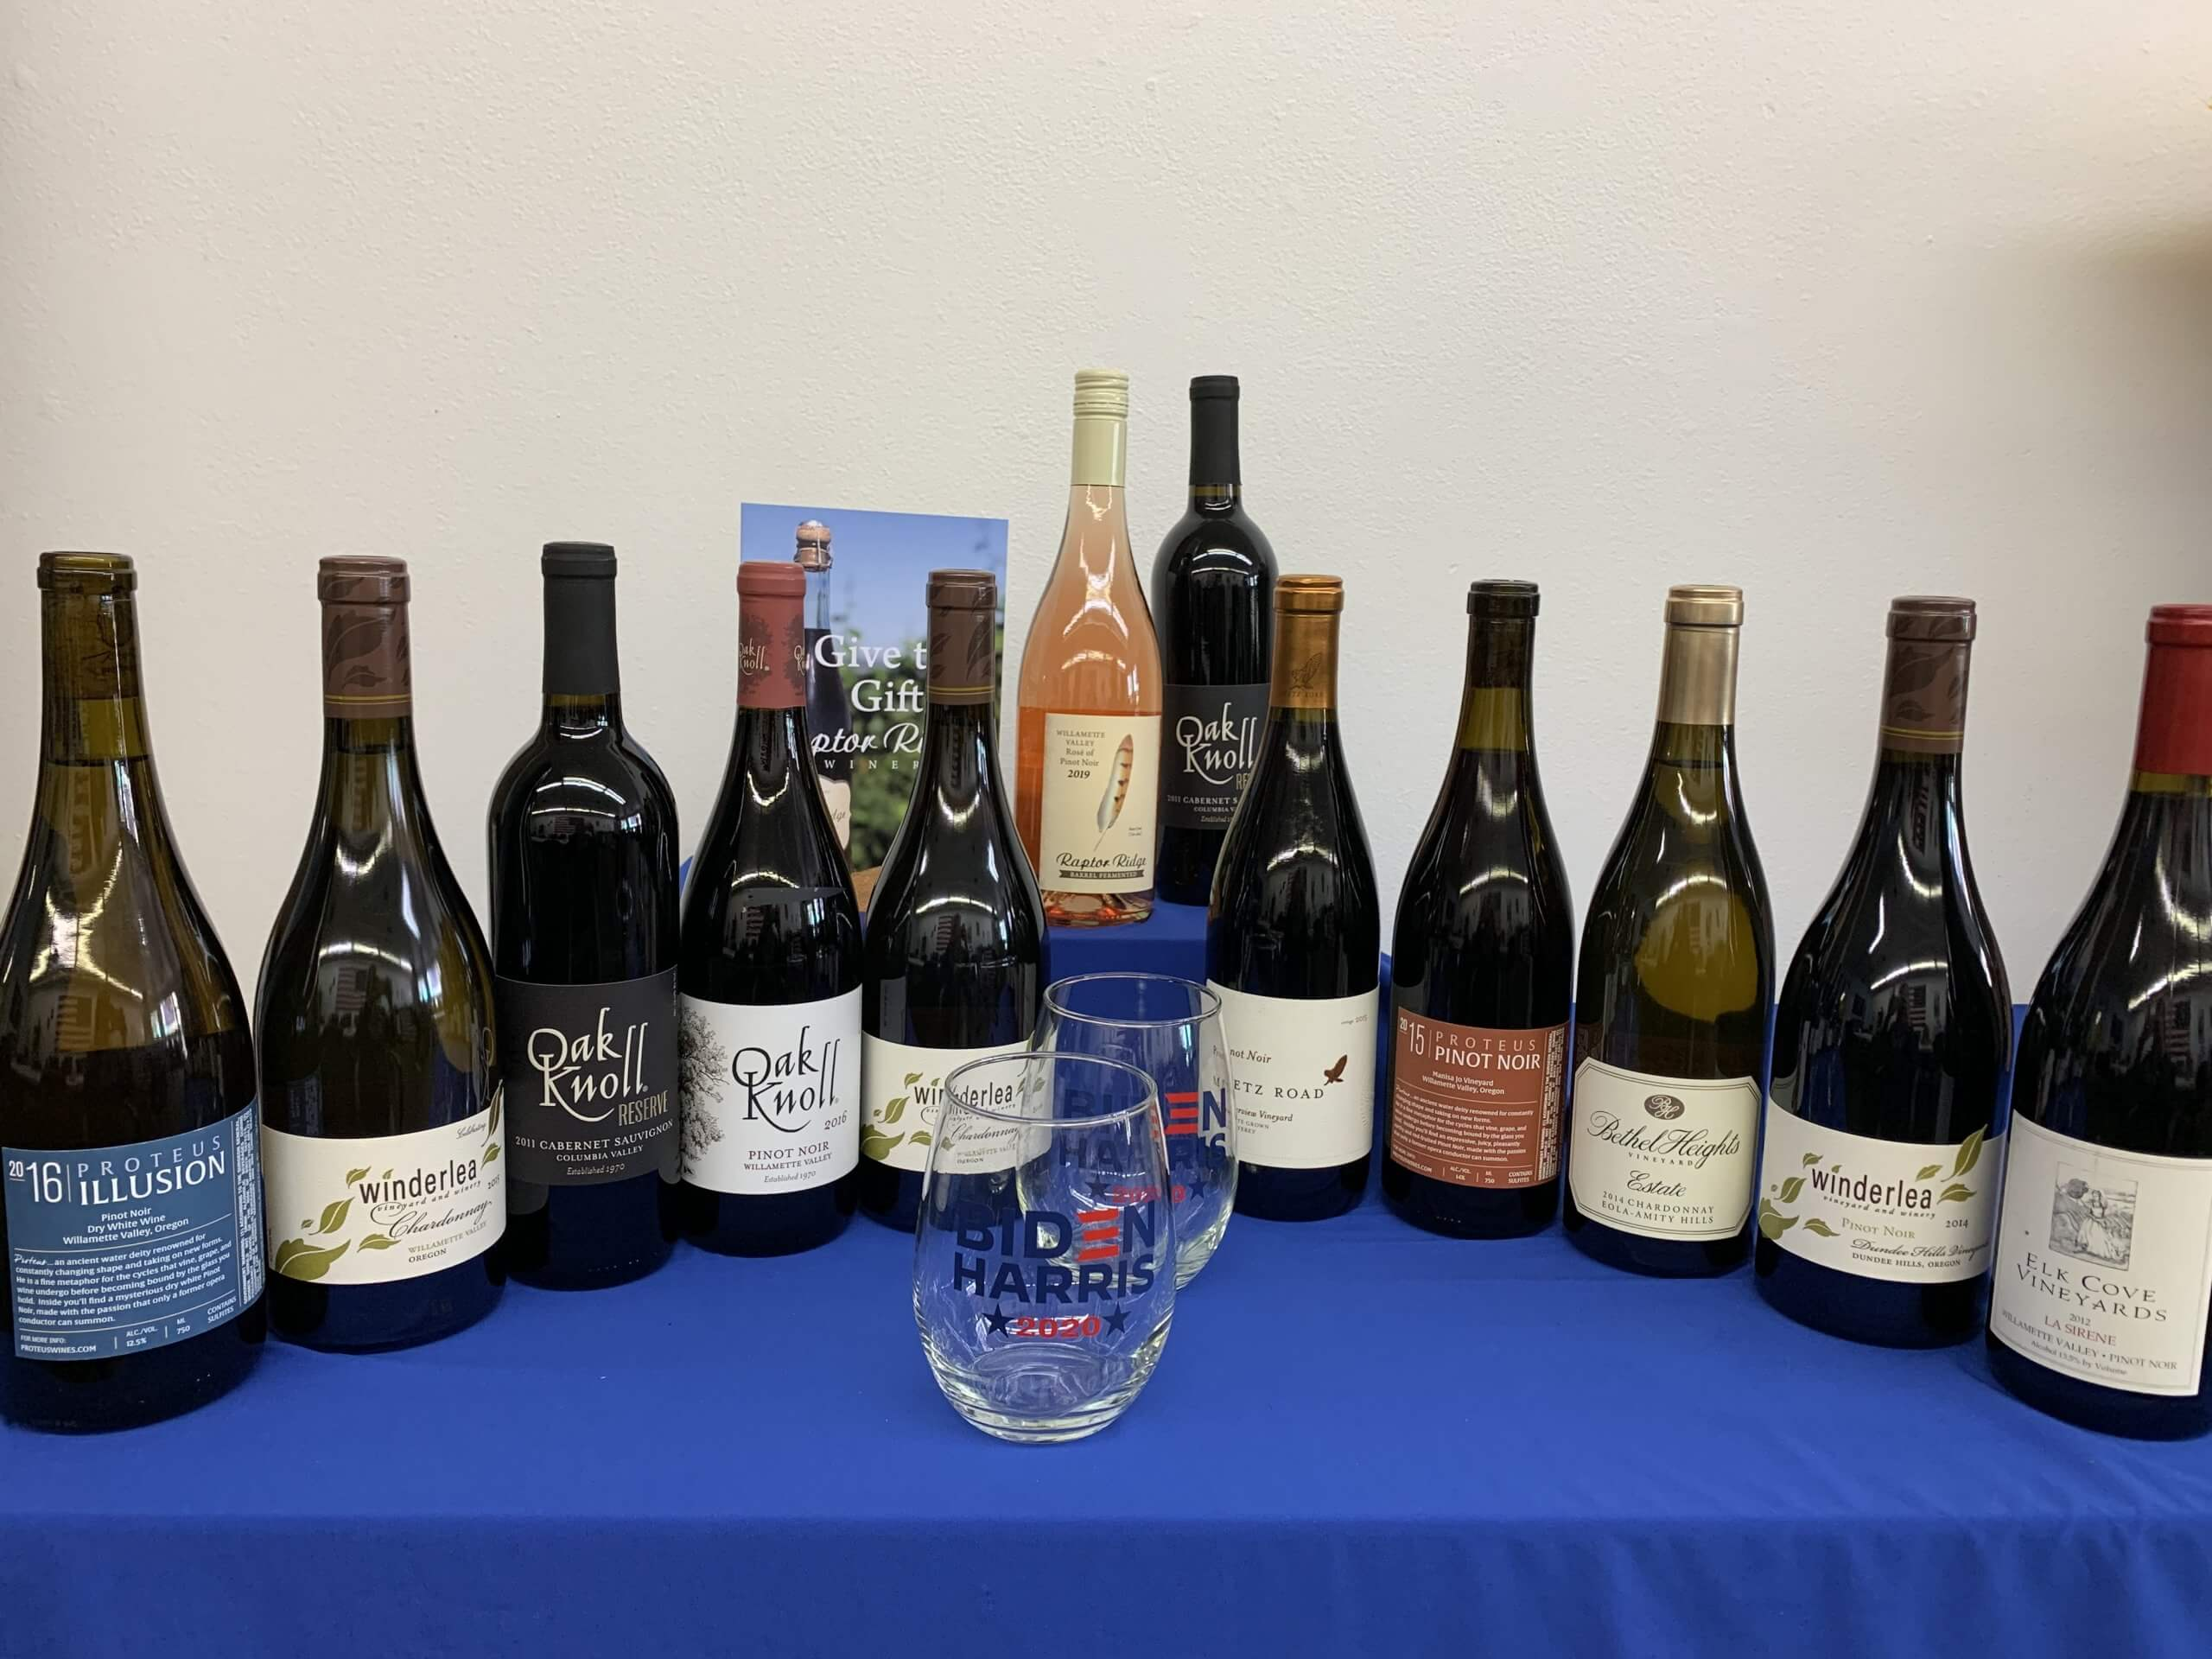 image of 12 wine bottles and two wine glasses